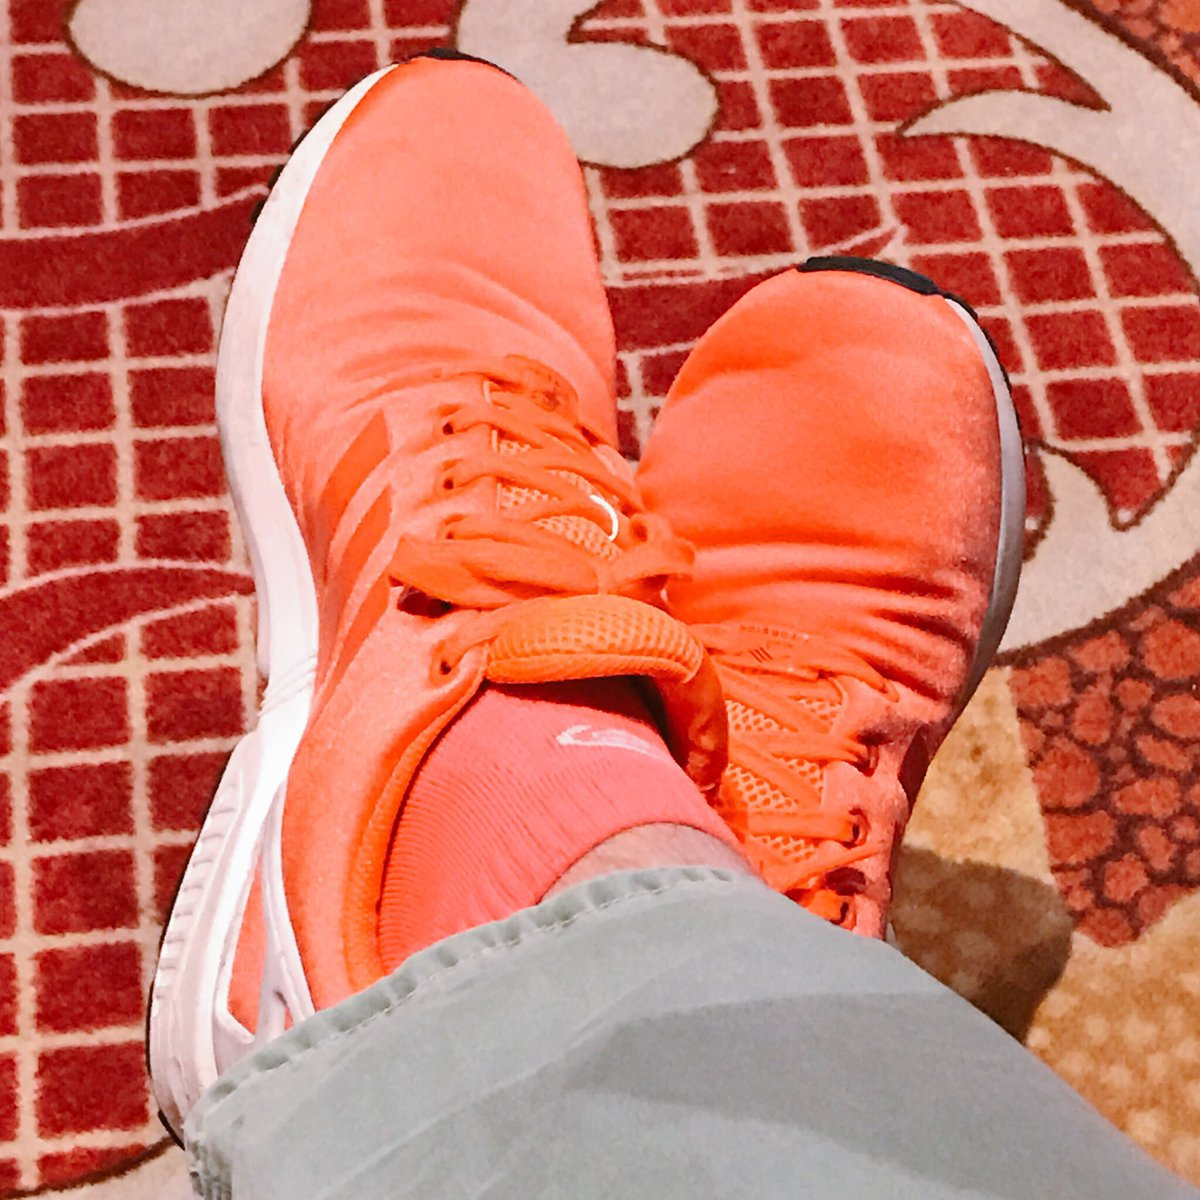 raybogman: #mageshoes #MagentoImagine https://t.co/qNFtjeUR83